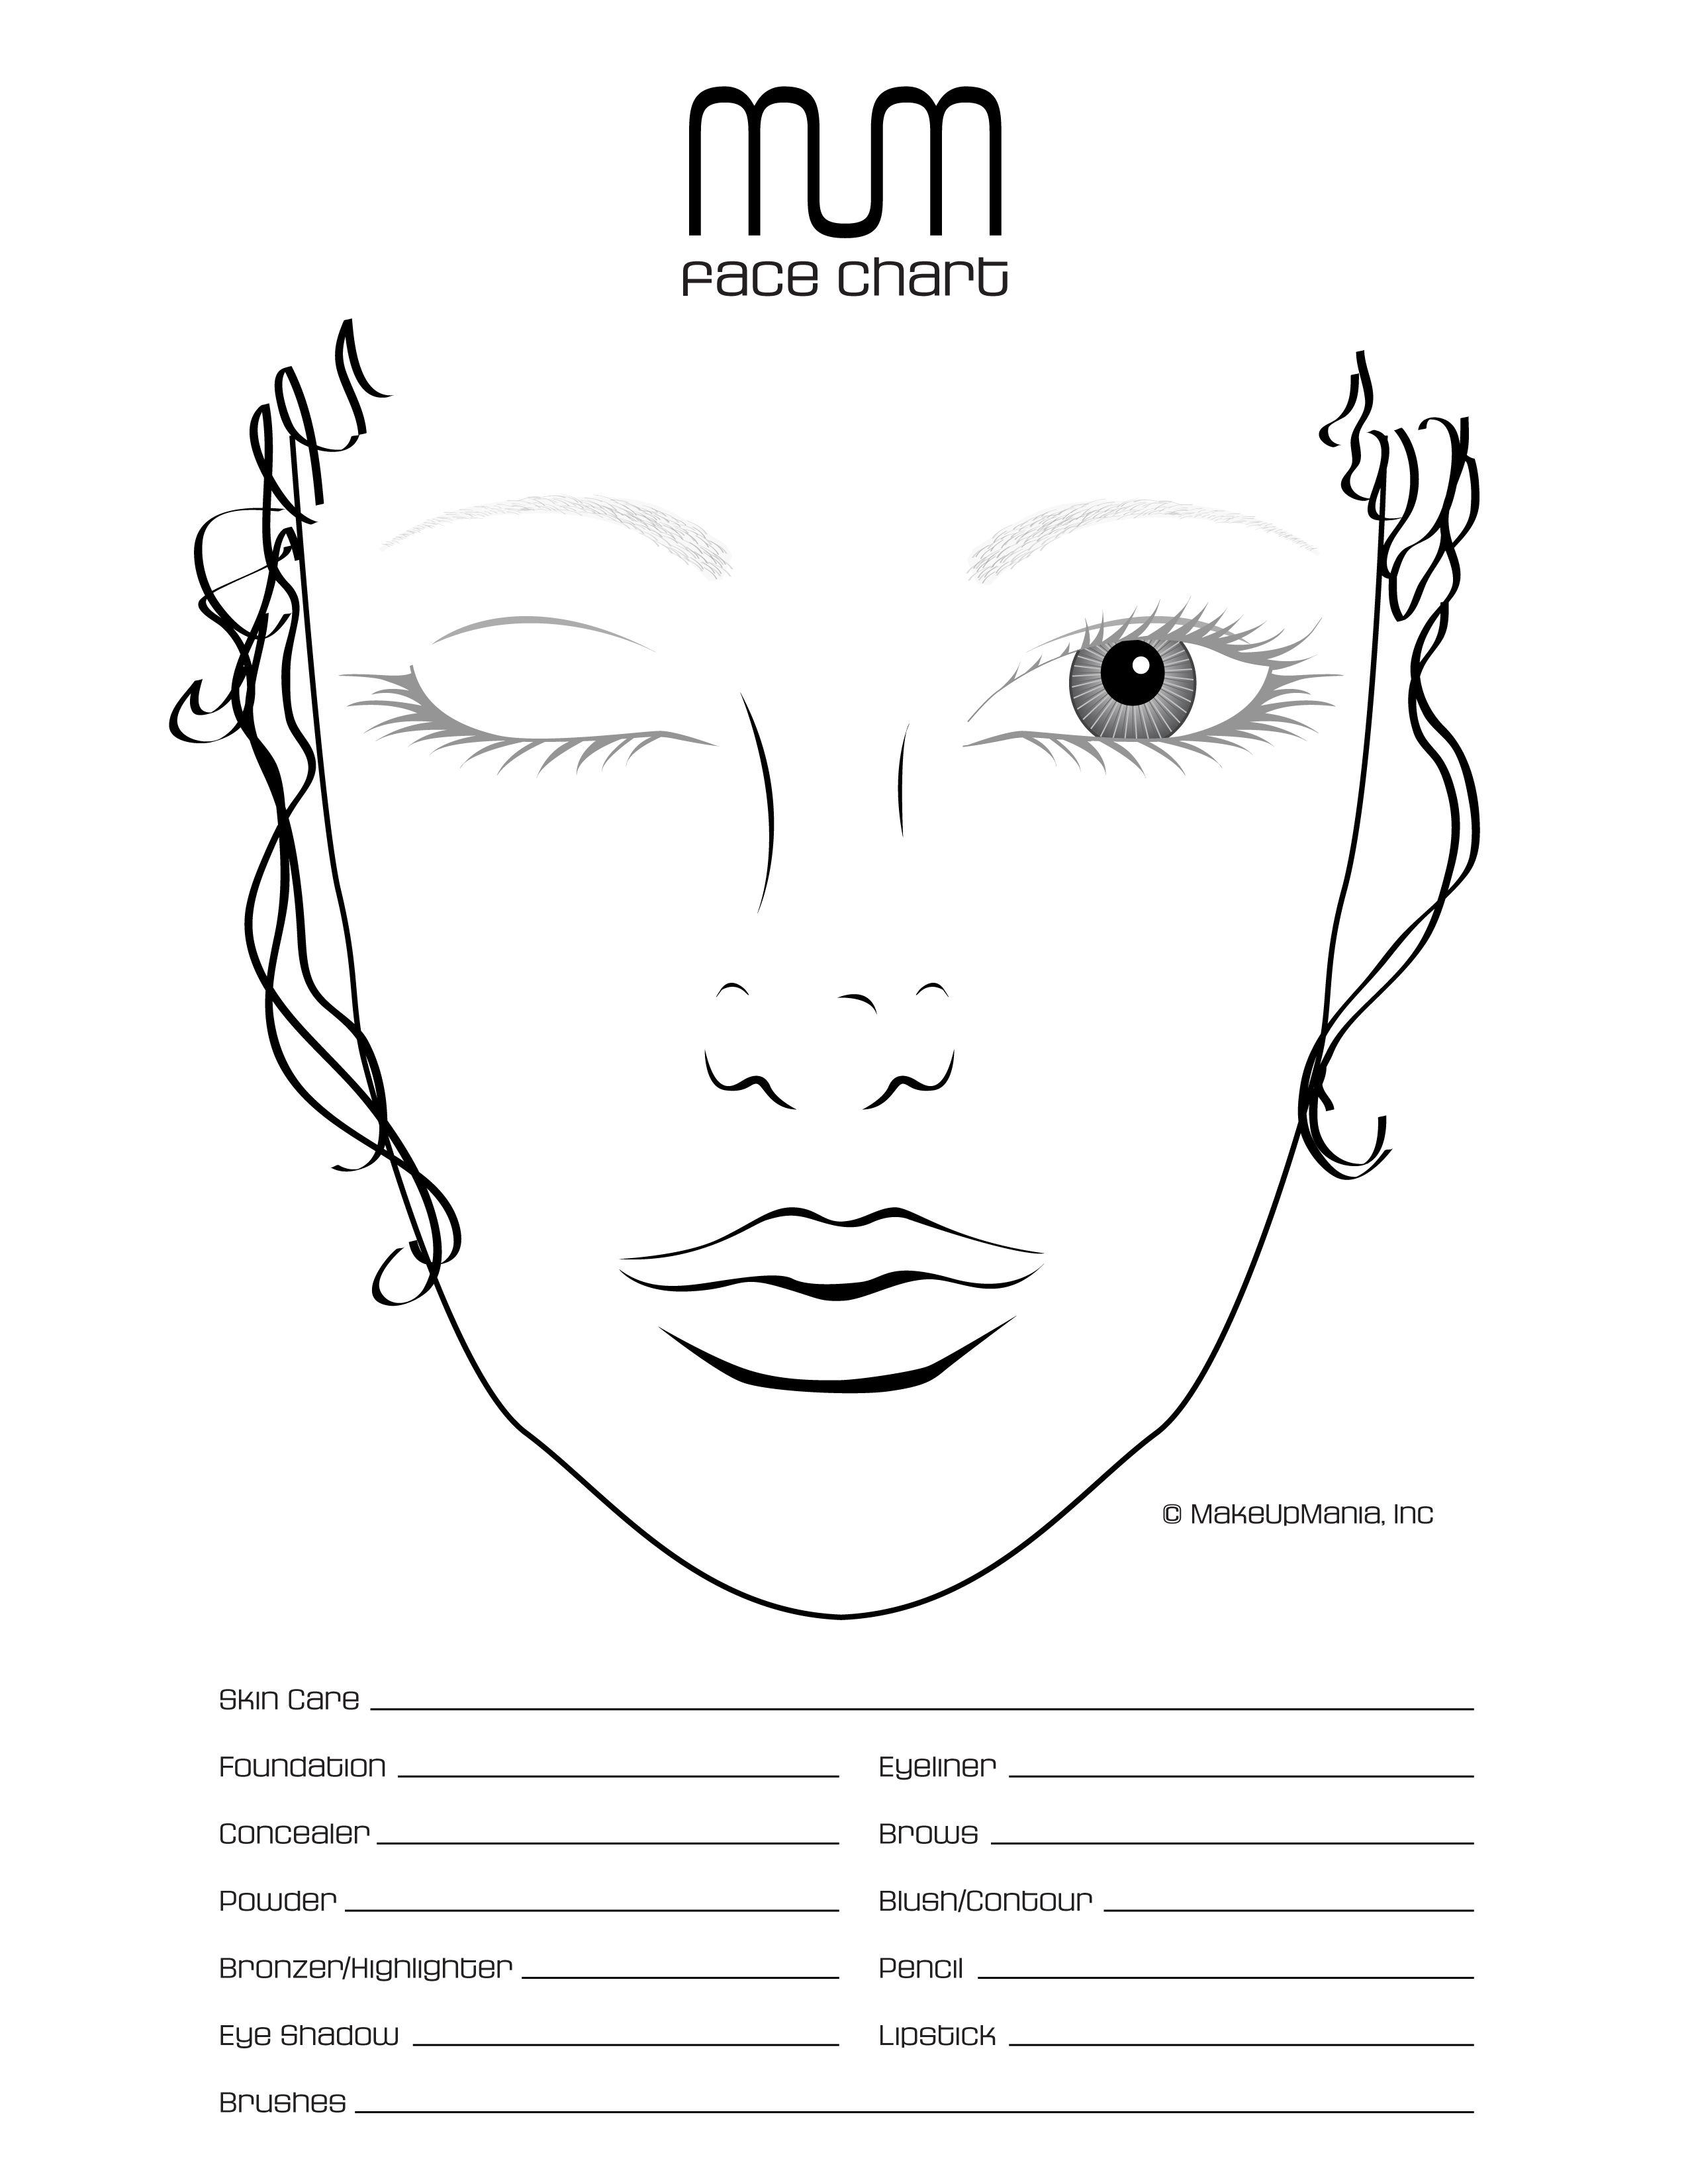 face chart for practice and repertoire of looks make ups makeup Makeup Artist Objective for Resume face chart for practice and repertoire of looks mac face charts makeup face charts